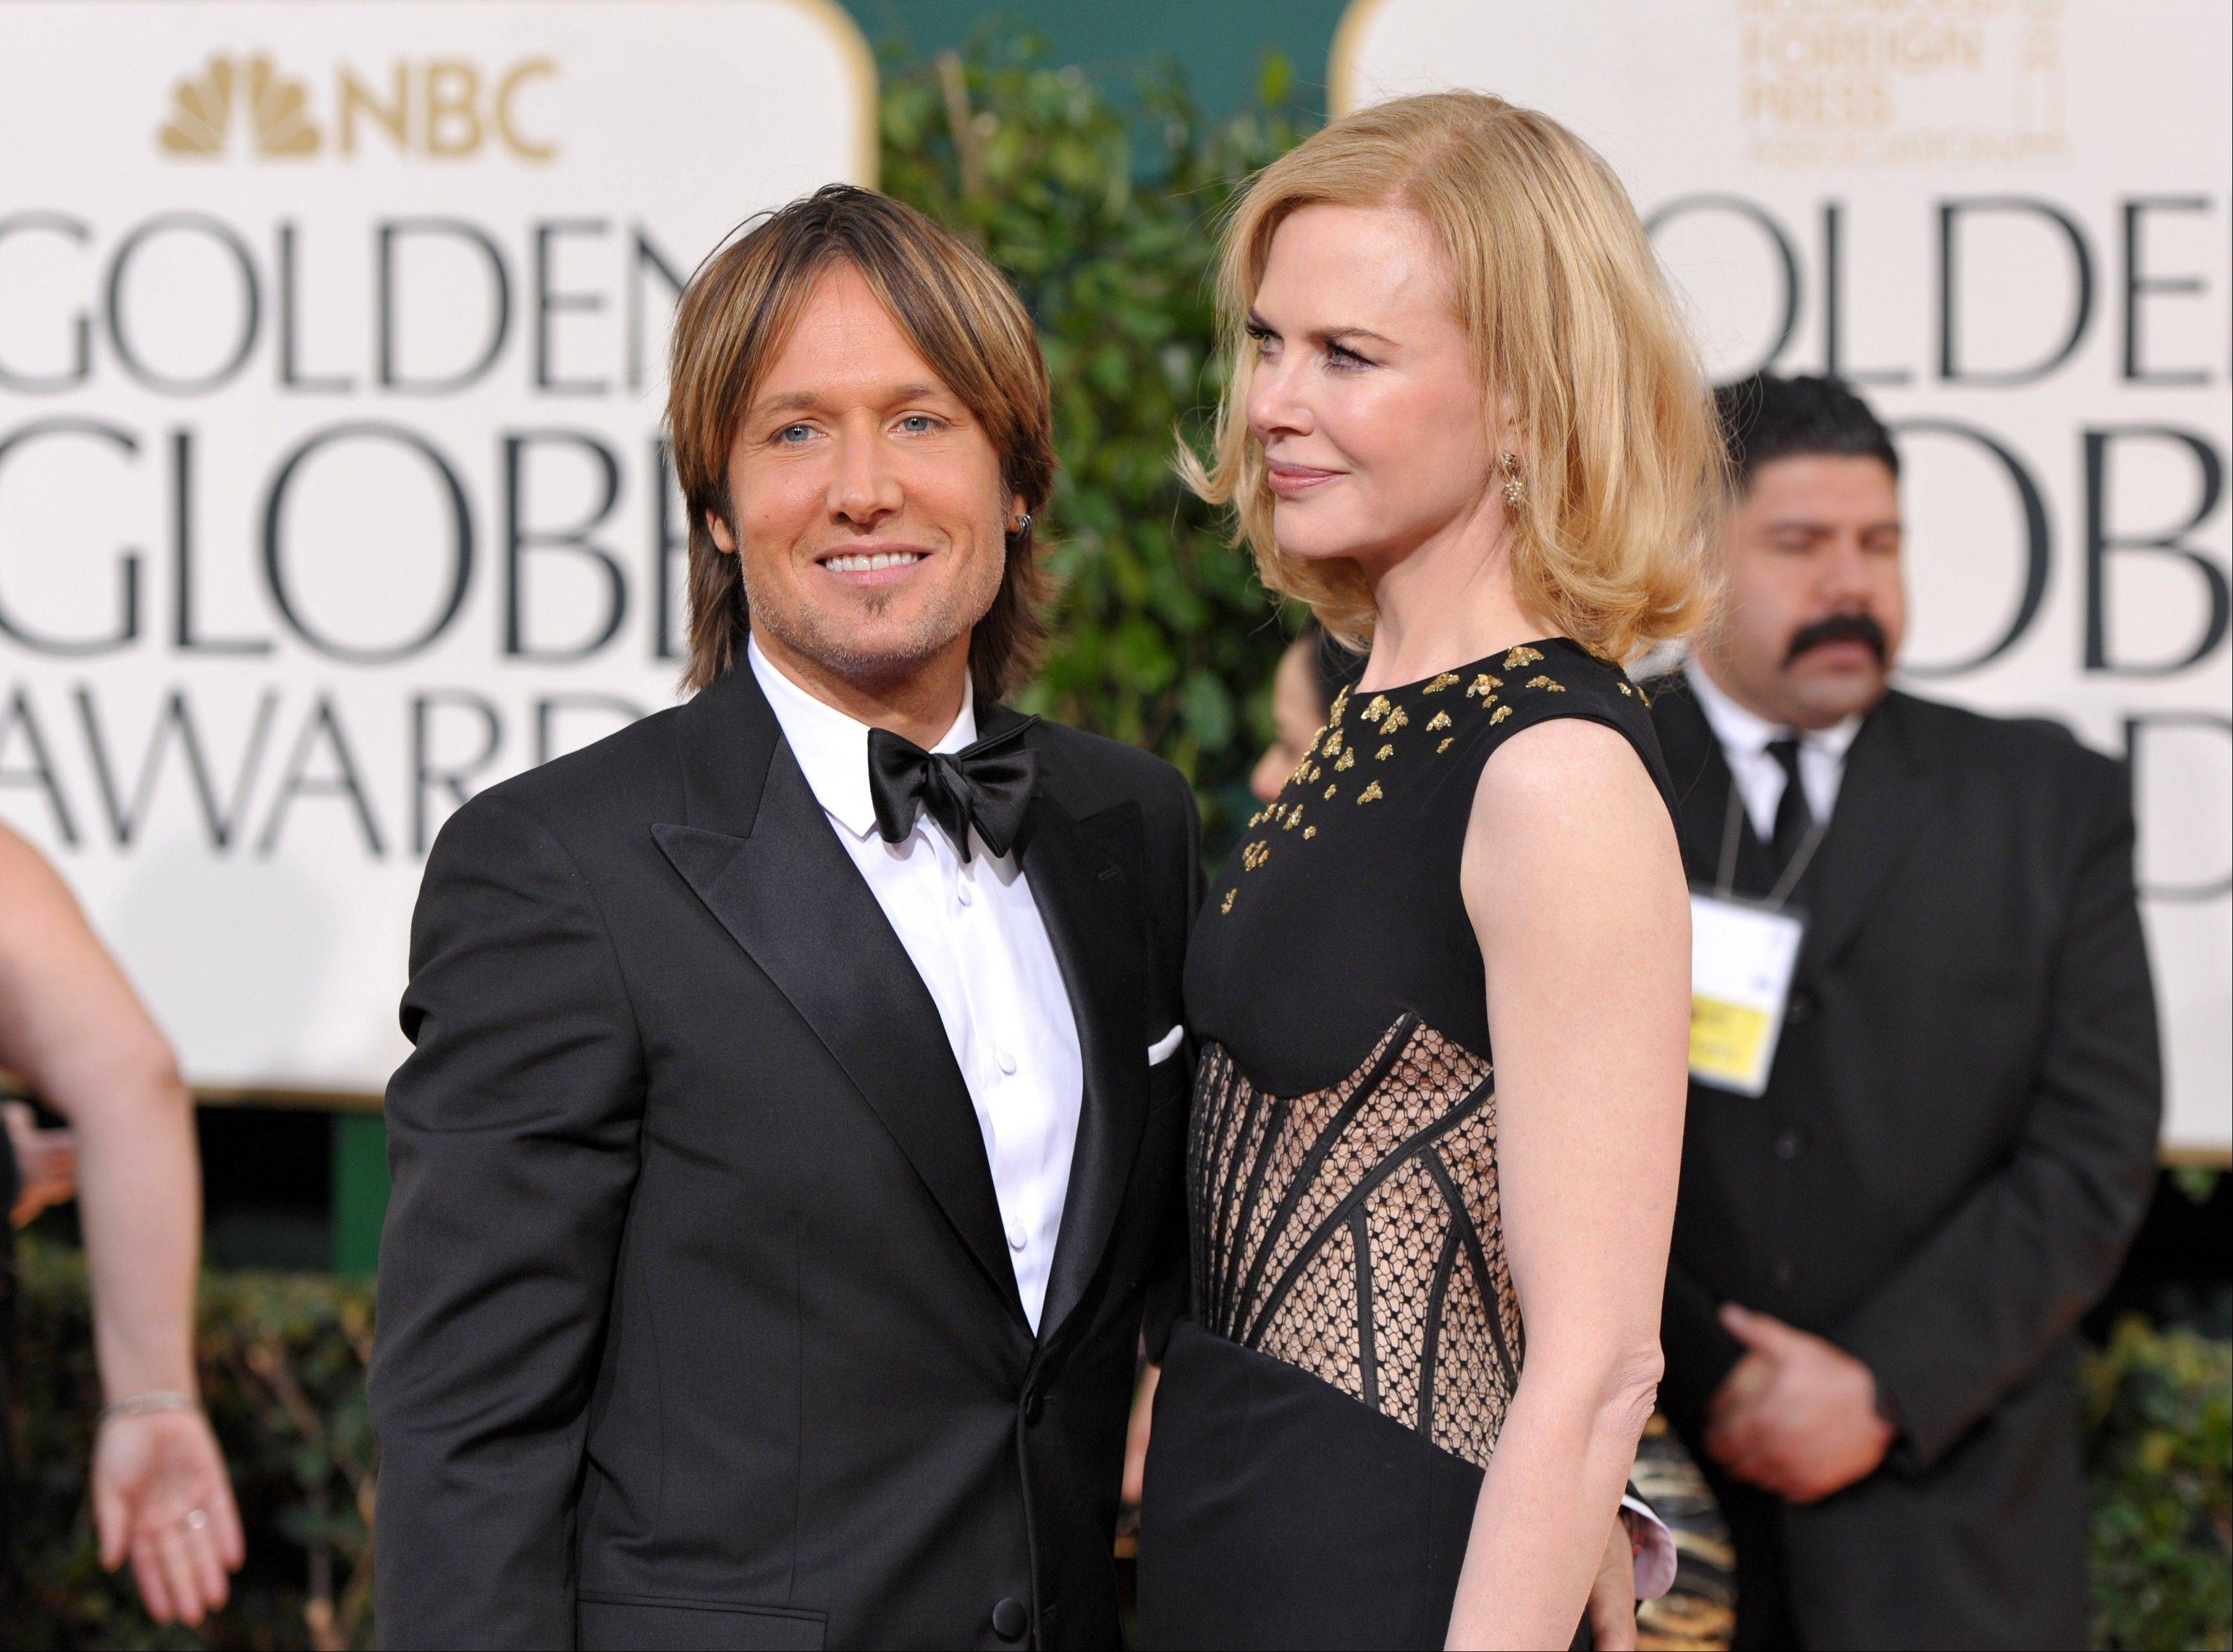 Musician Keith Urban, left, and actress Nicole Kidman arrive at the 70th Annual Golden Globe Awards at the Beverly Hilton Hotel on Sunday Jan. 13, 2013, in Beverly Hills, Calif.